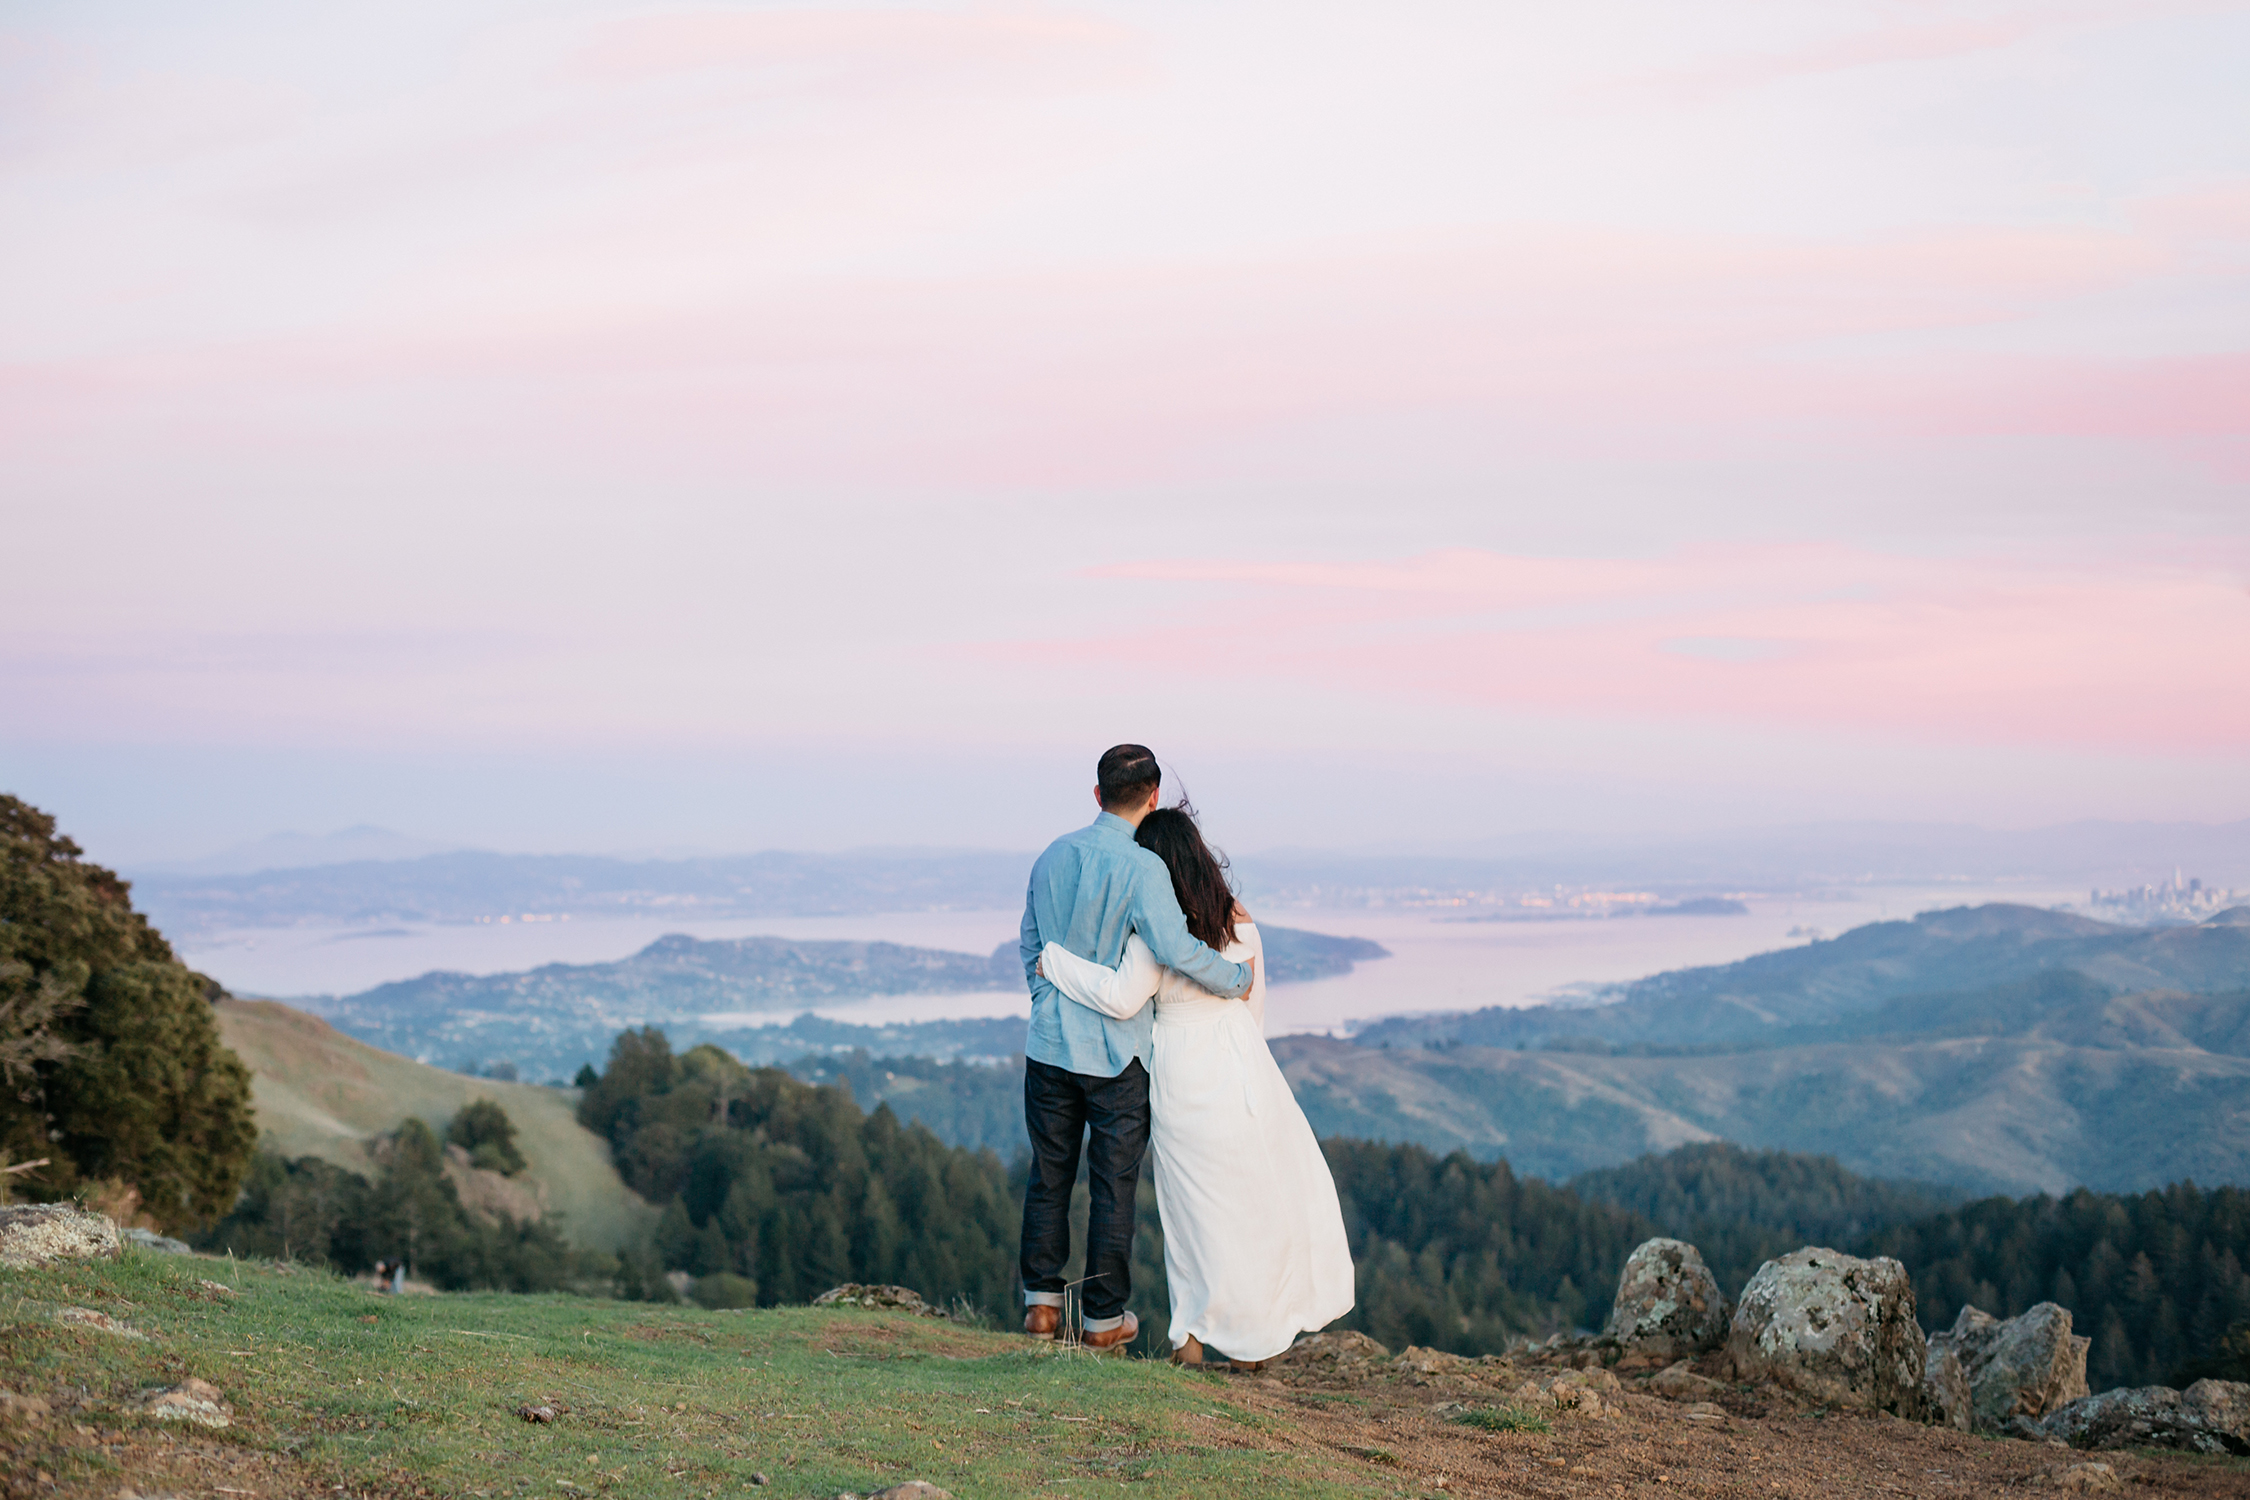 Couple overlooking the San Francisco Bay Area during their engagement session in Mount Tamalpais in Marin, California.